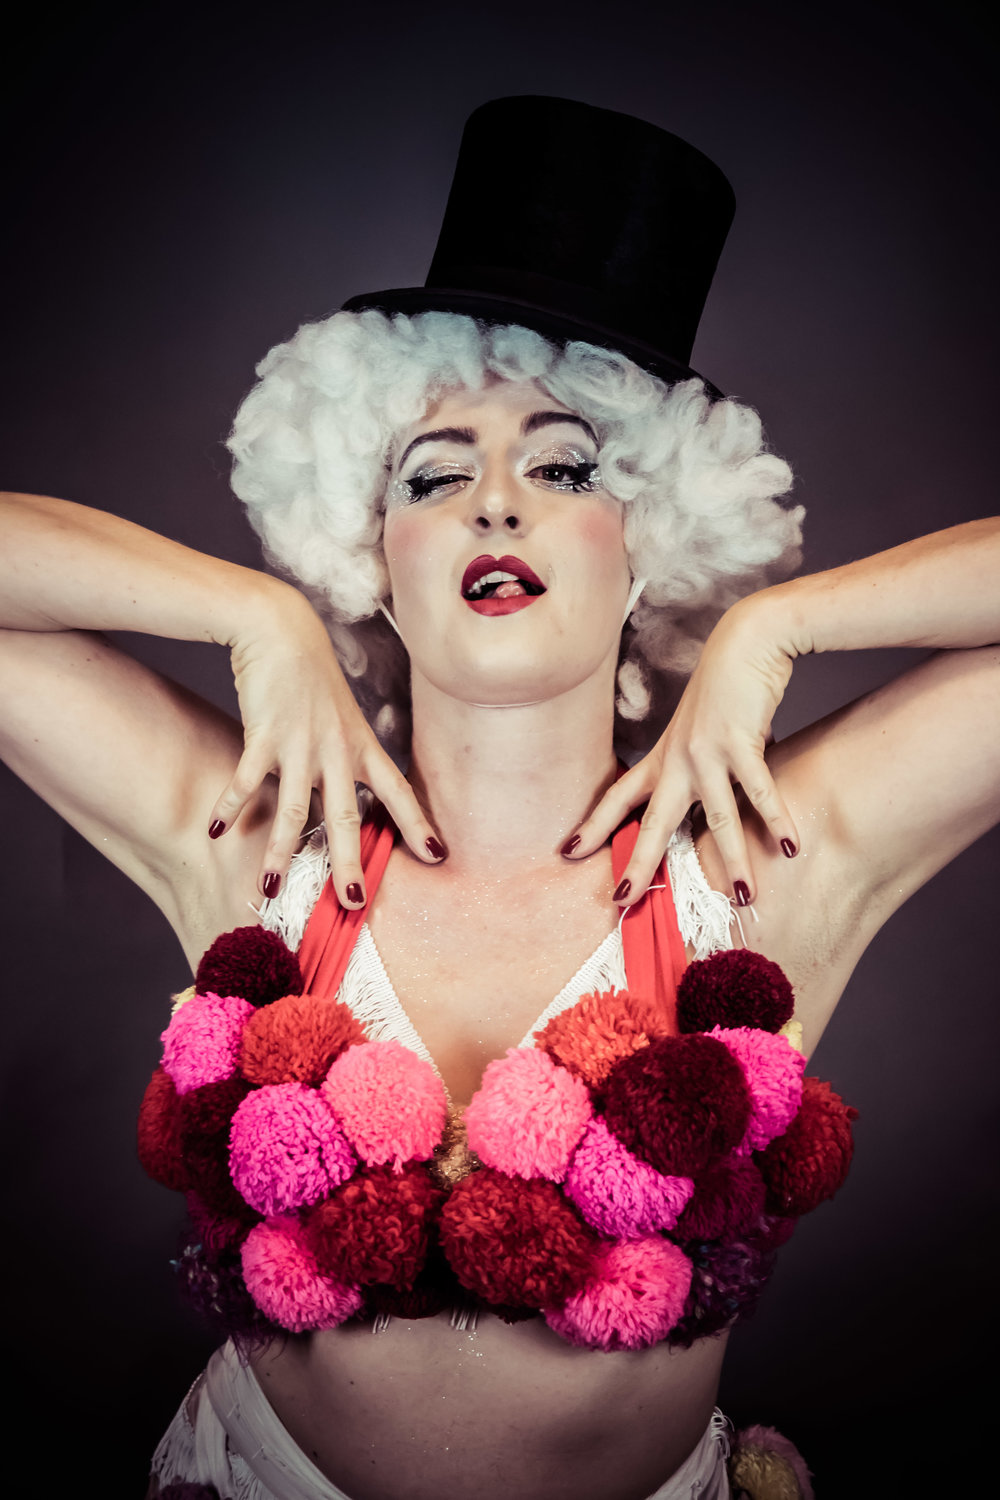 3rd Swiss Crown of Burlesque 2018 - Lulu Applecheeck - Switzerland